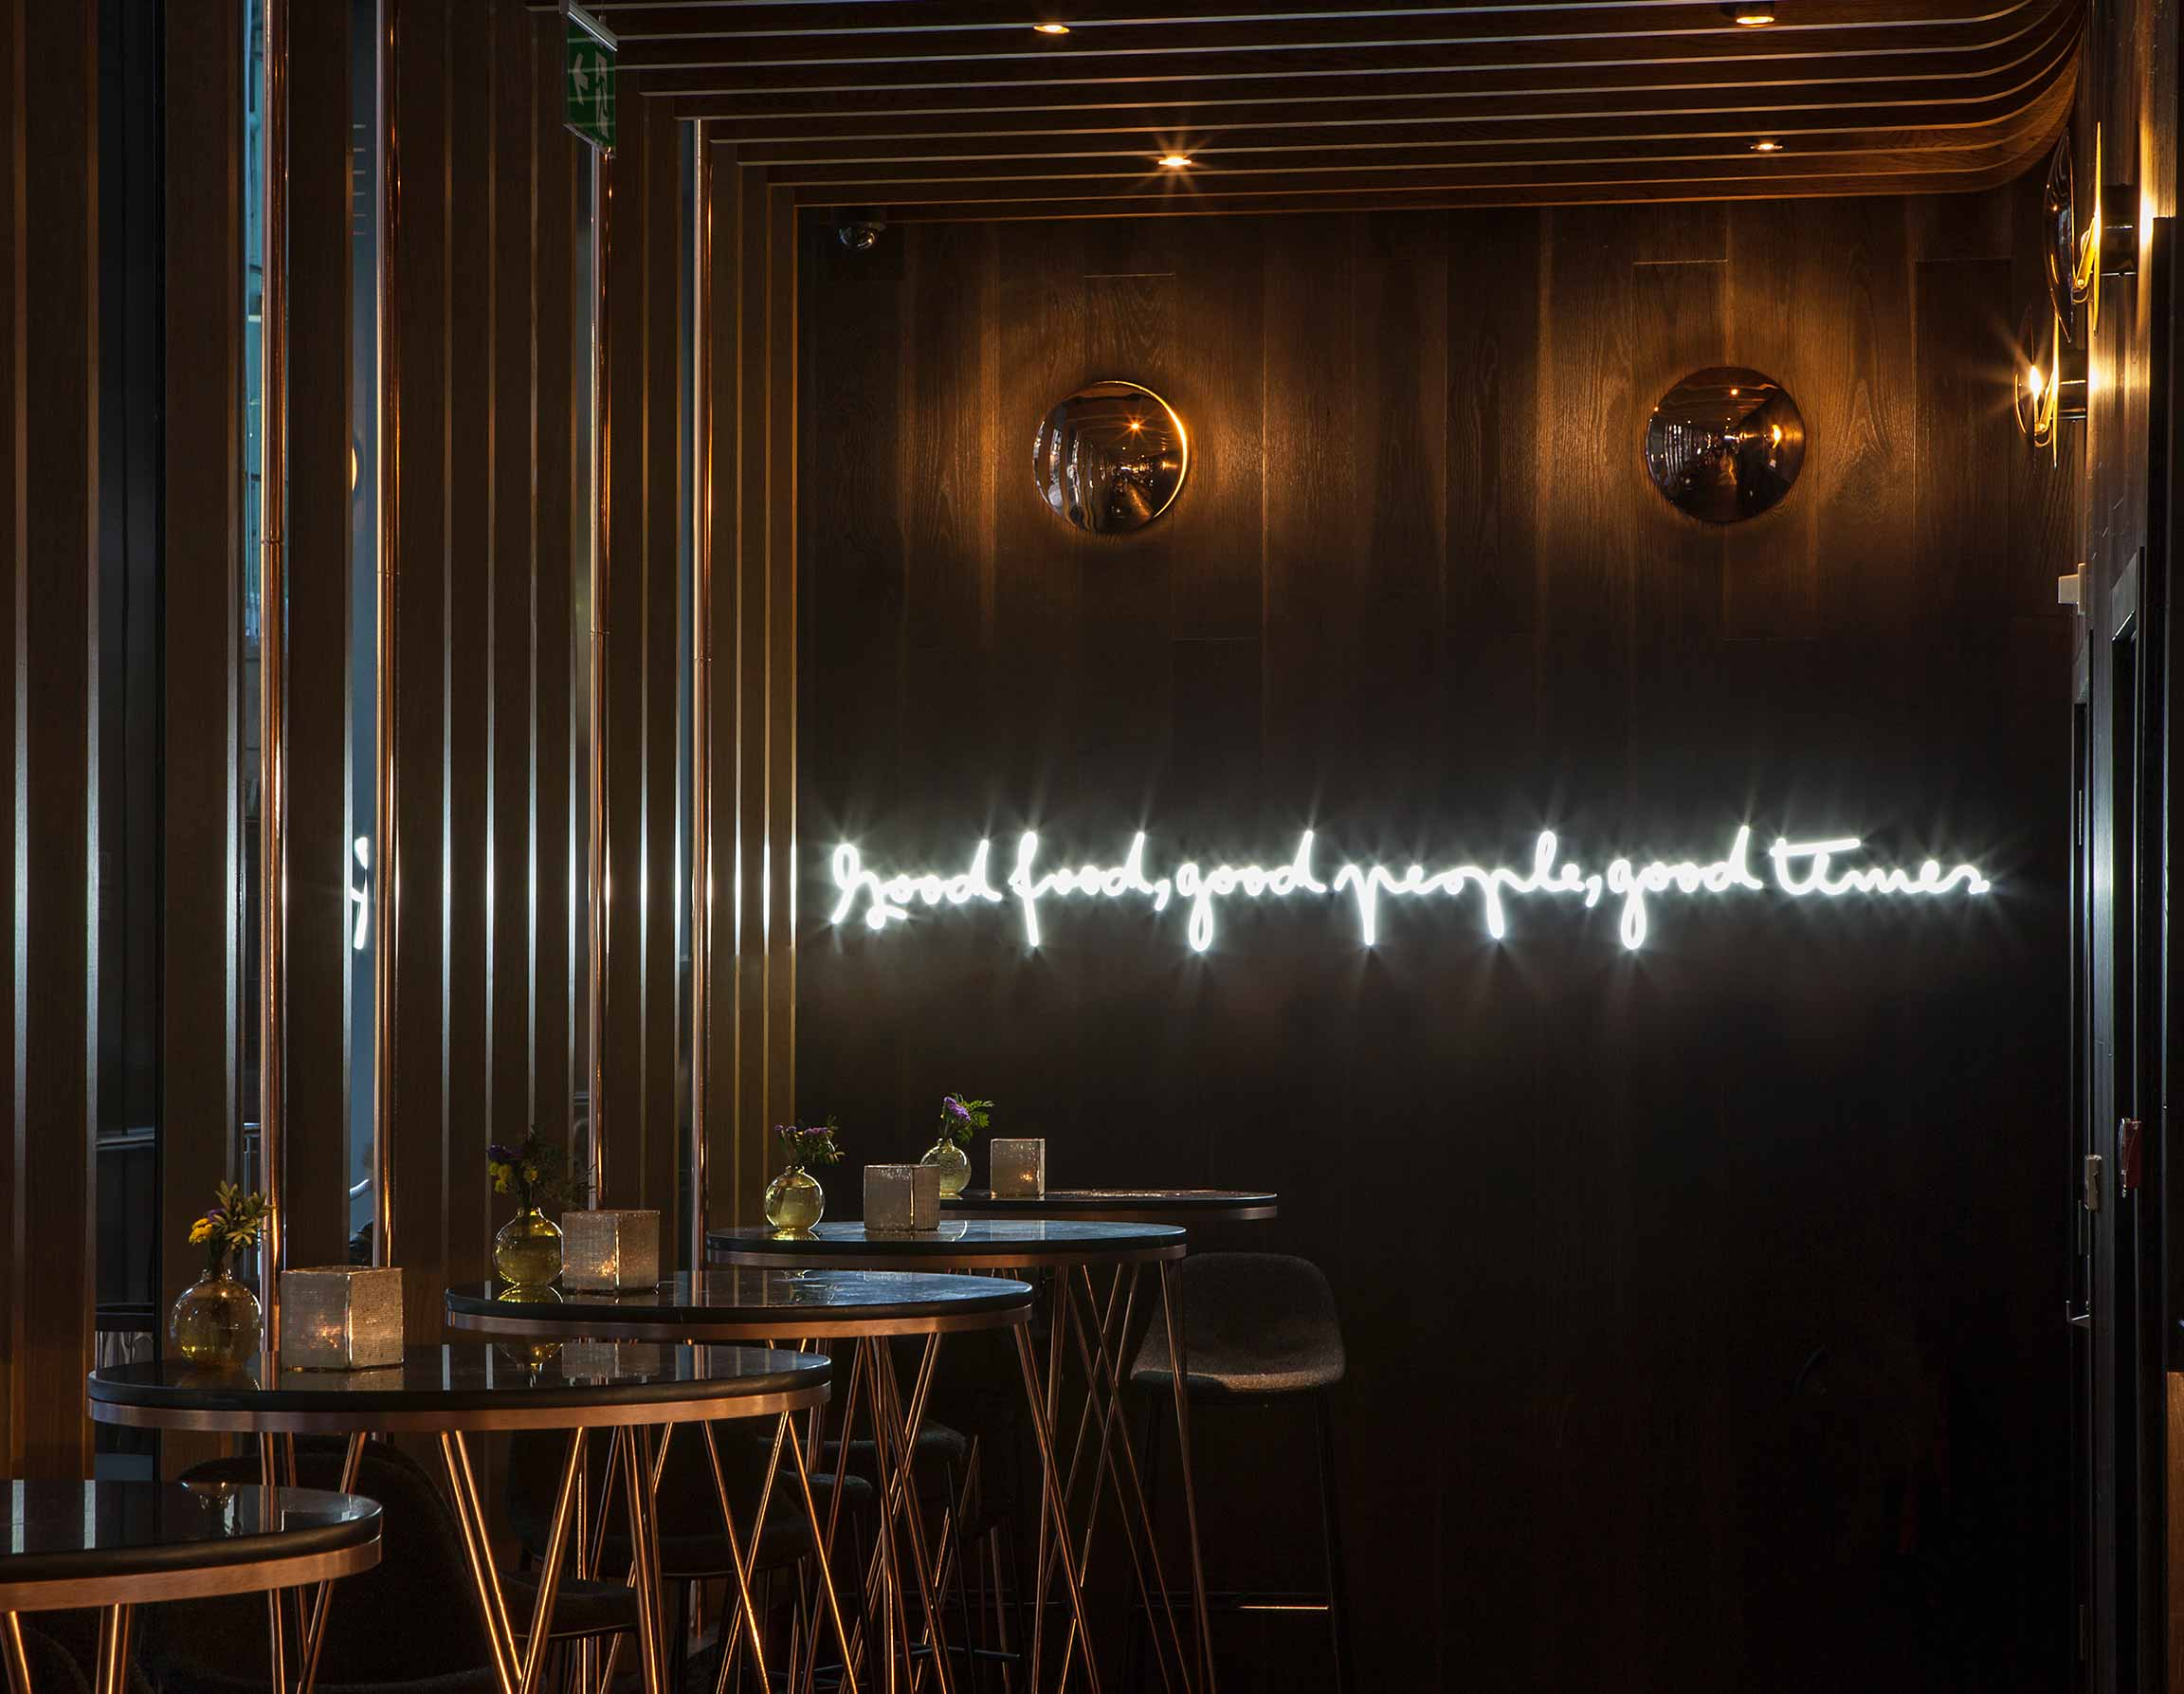 Handmade Disc Luminaires Halo Glow Dark Timber Backdrop Restaurant Nulty Bespoke